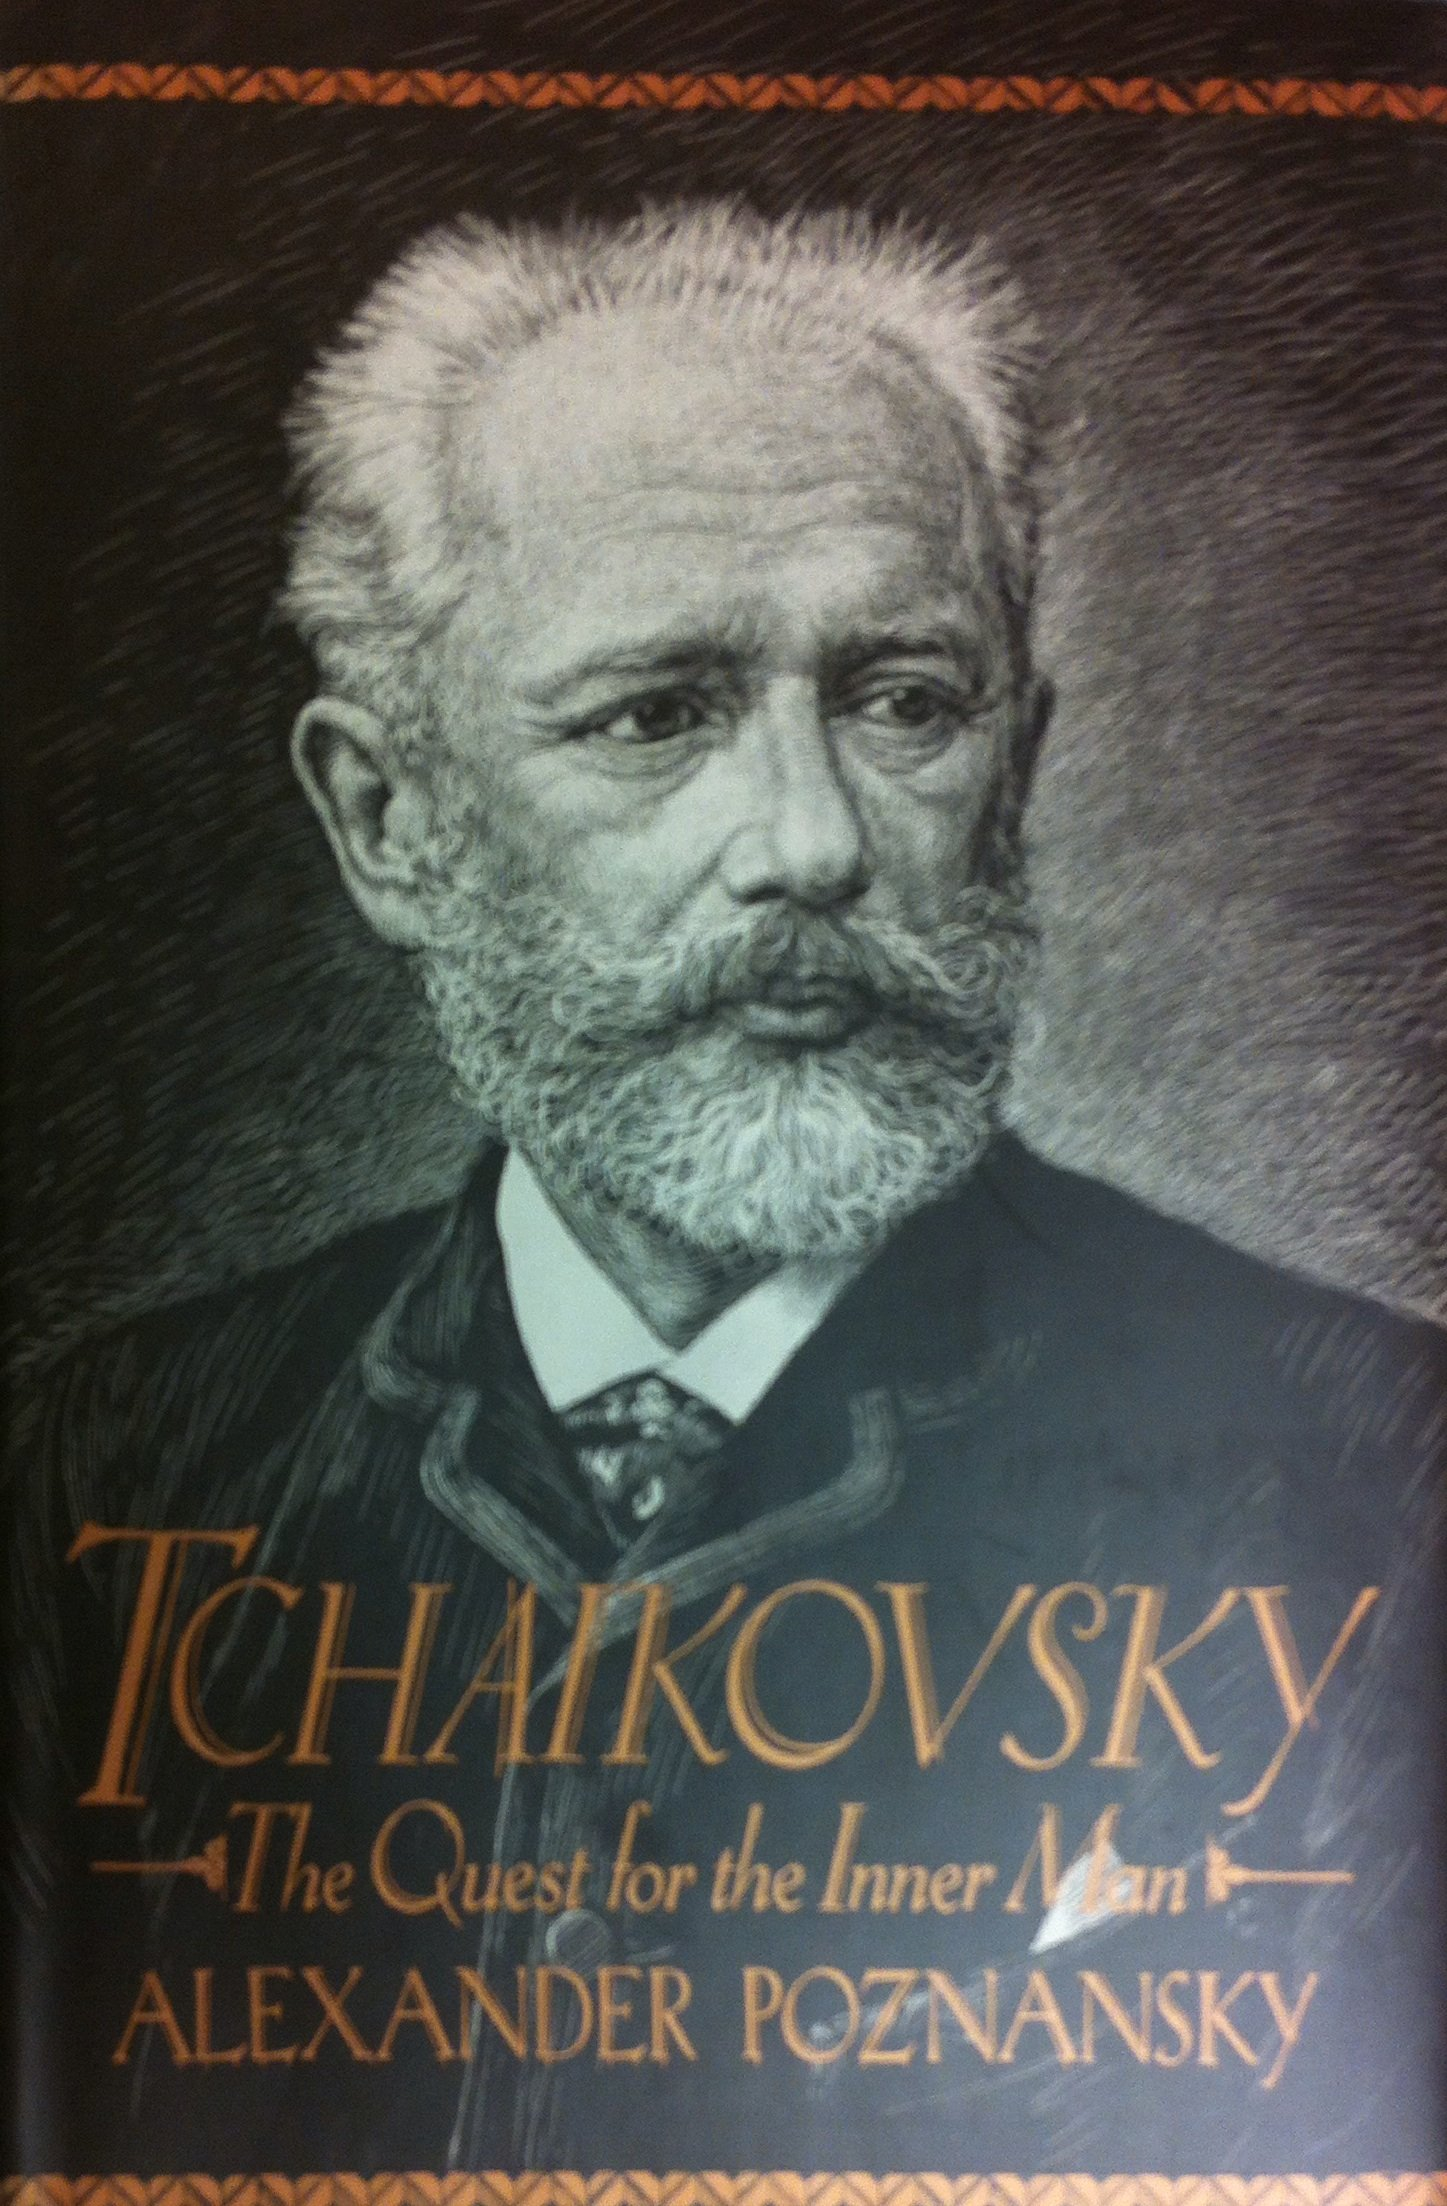 Biography of Tchaikovsky. The story of a great man 91